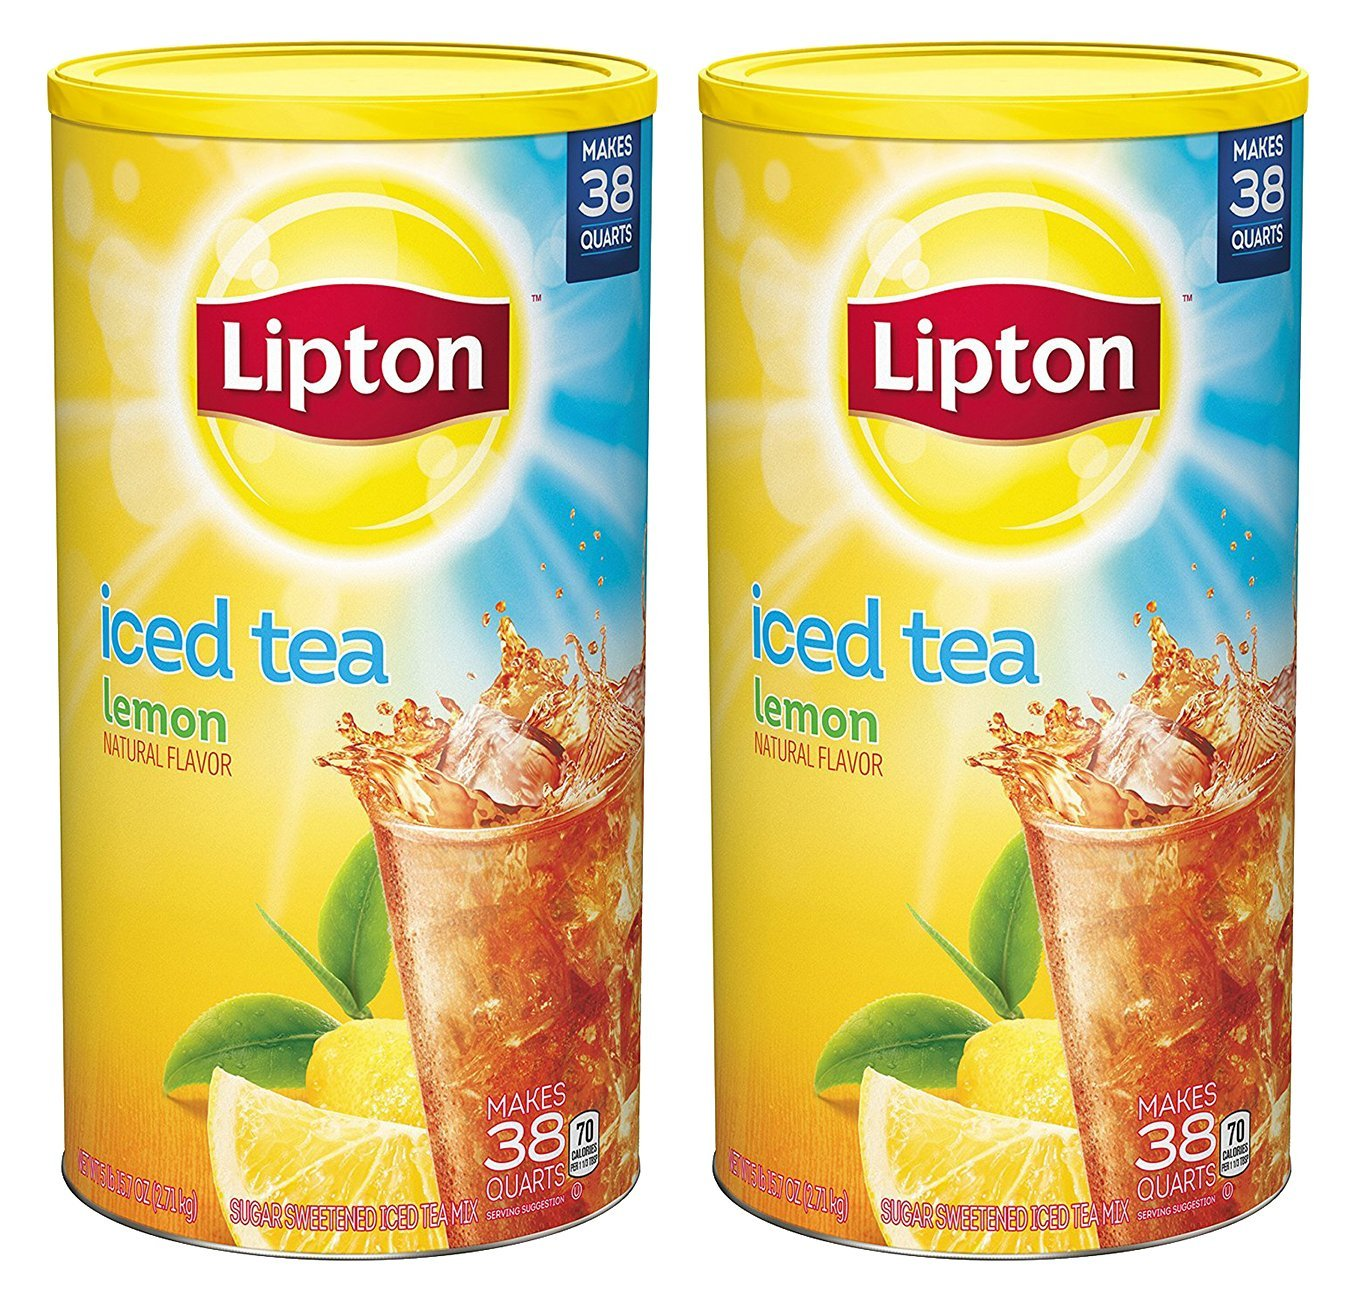 Lipton Iced Tea Mix, Lemon 38 qt - Pack of 2